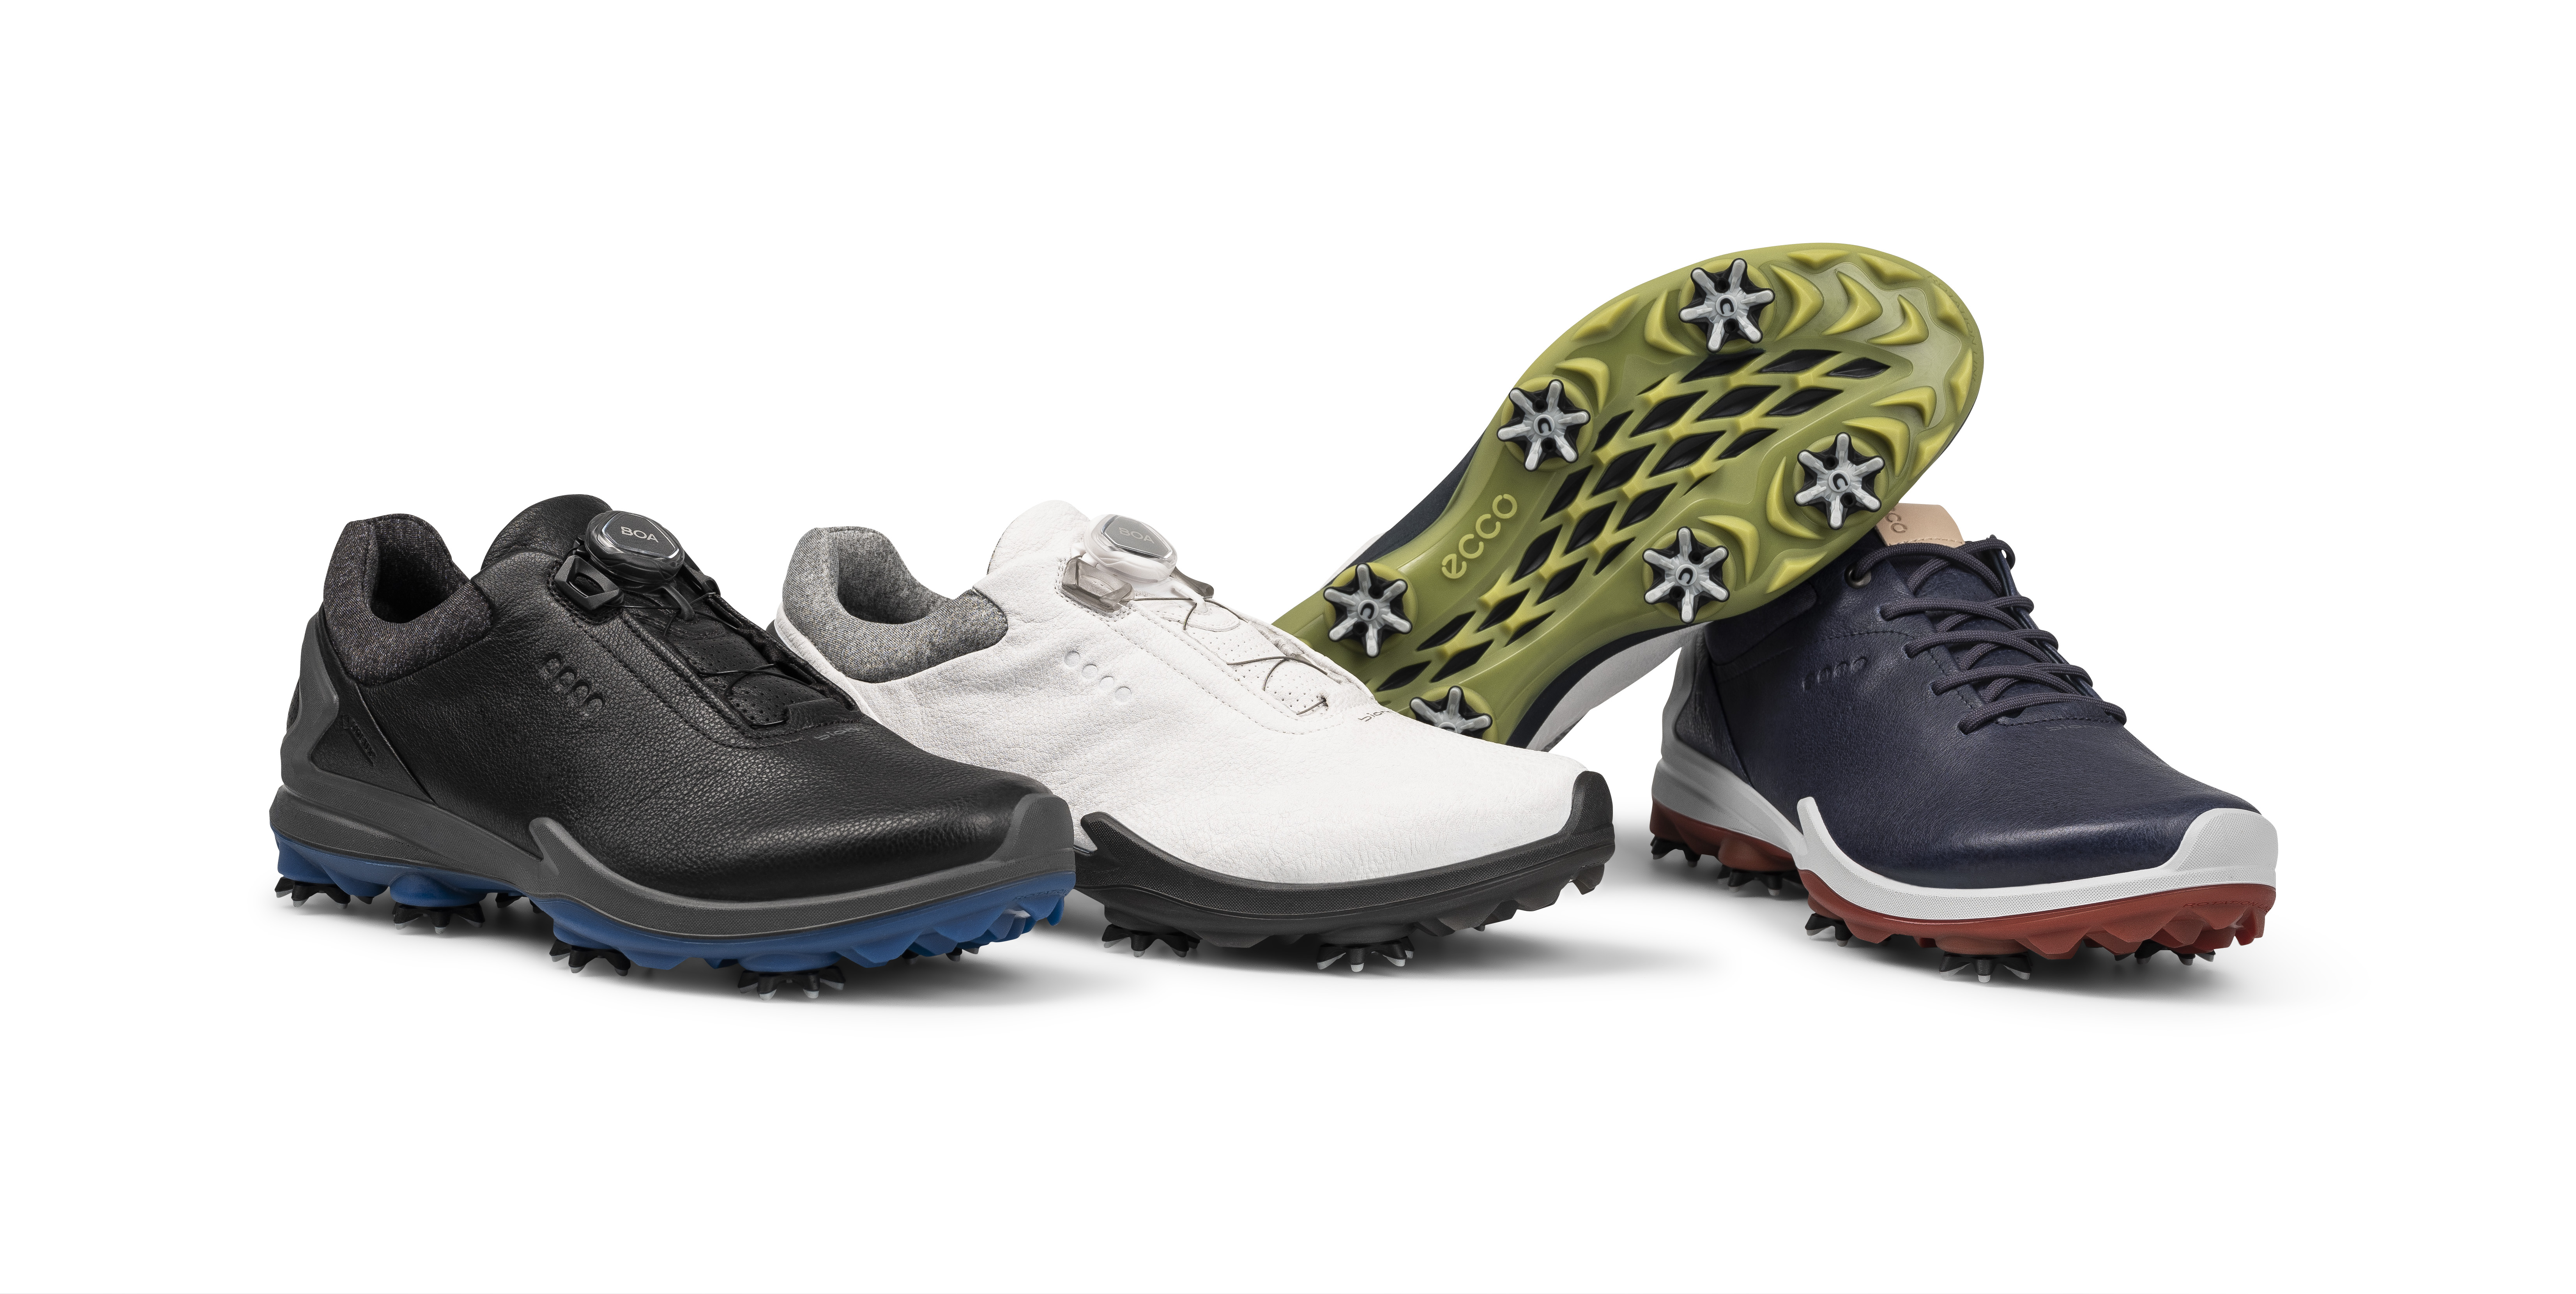 6918e999609676 Ecco Biom Shoes Golf - Style Guru  Fashion